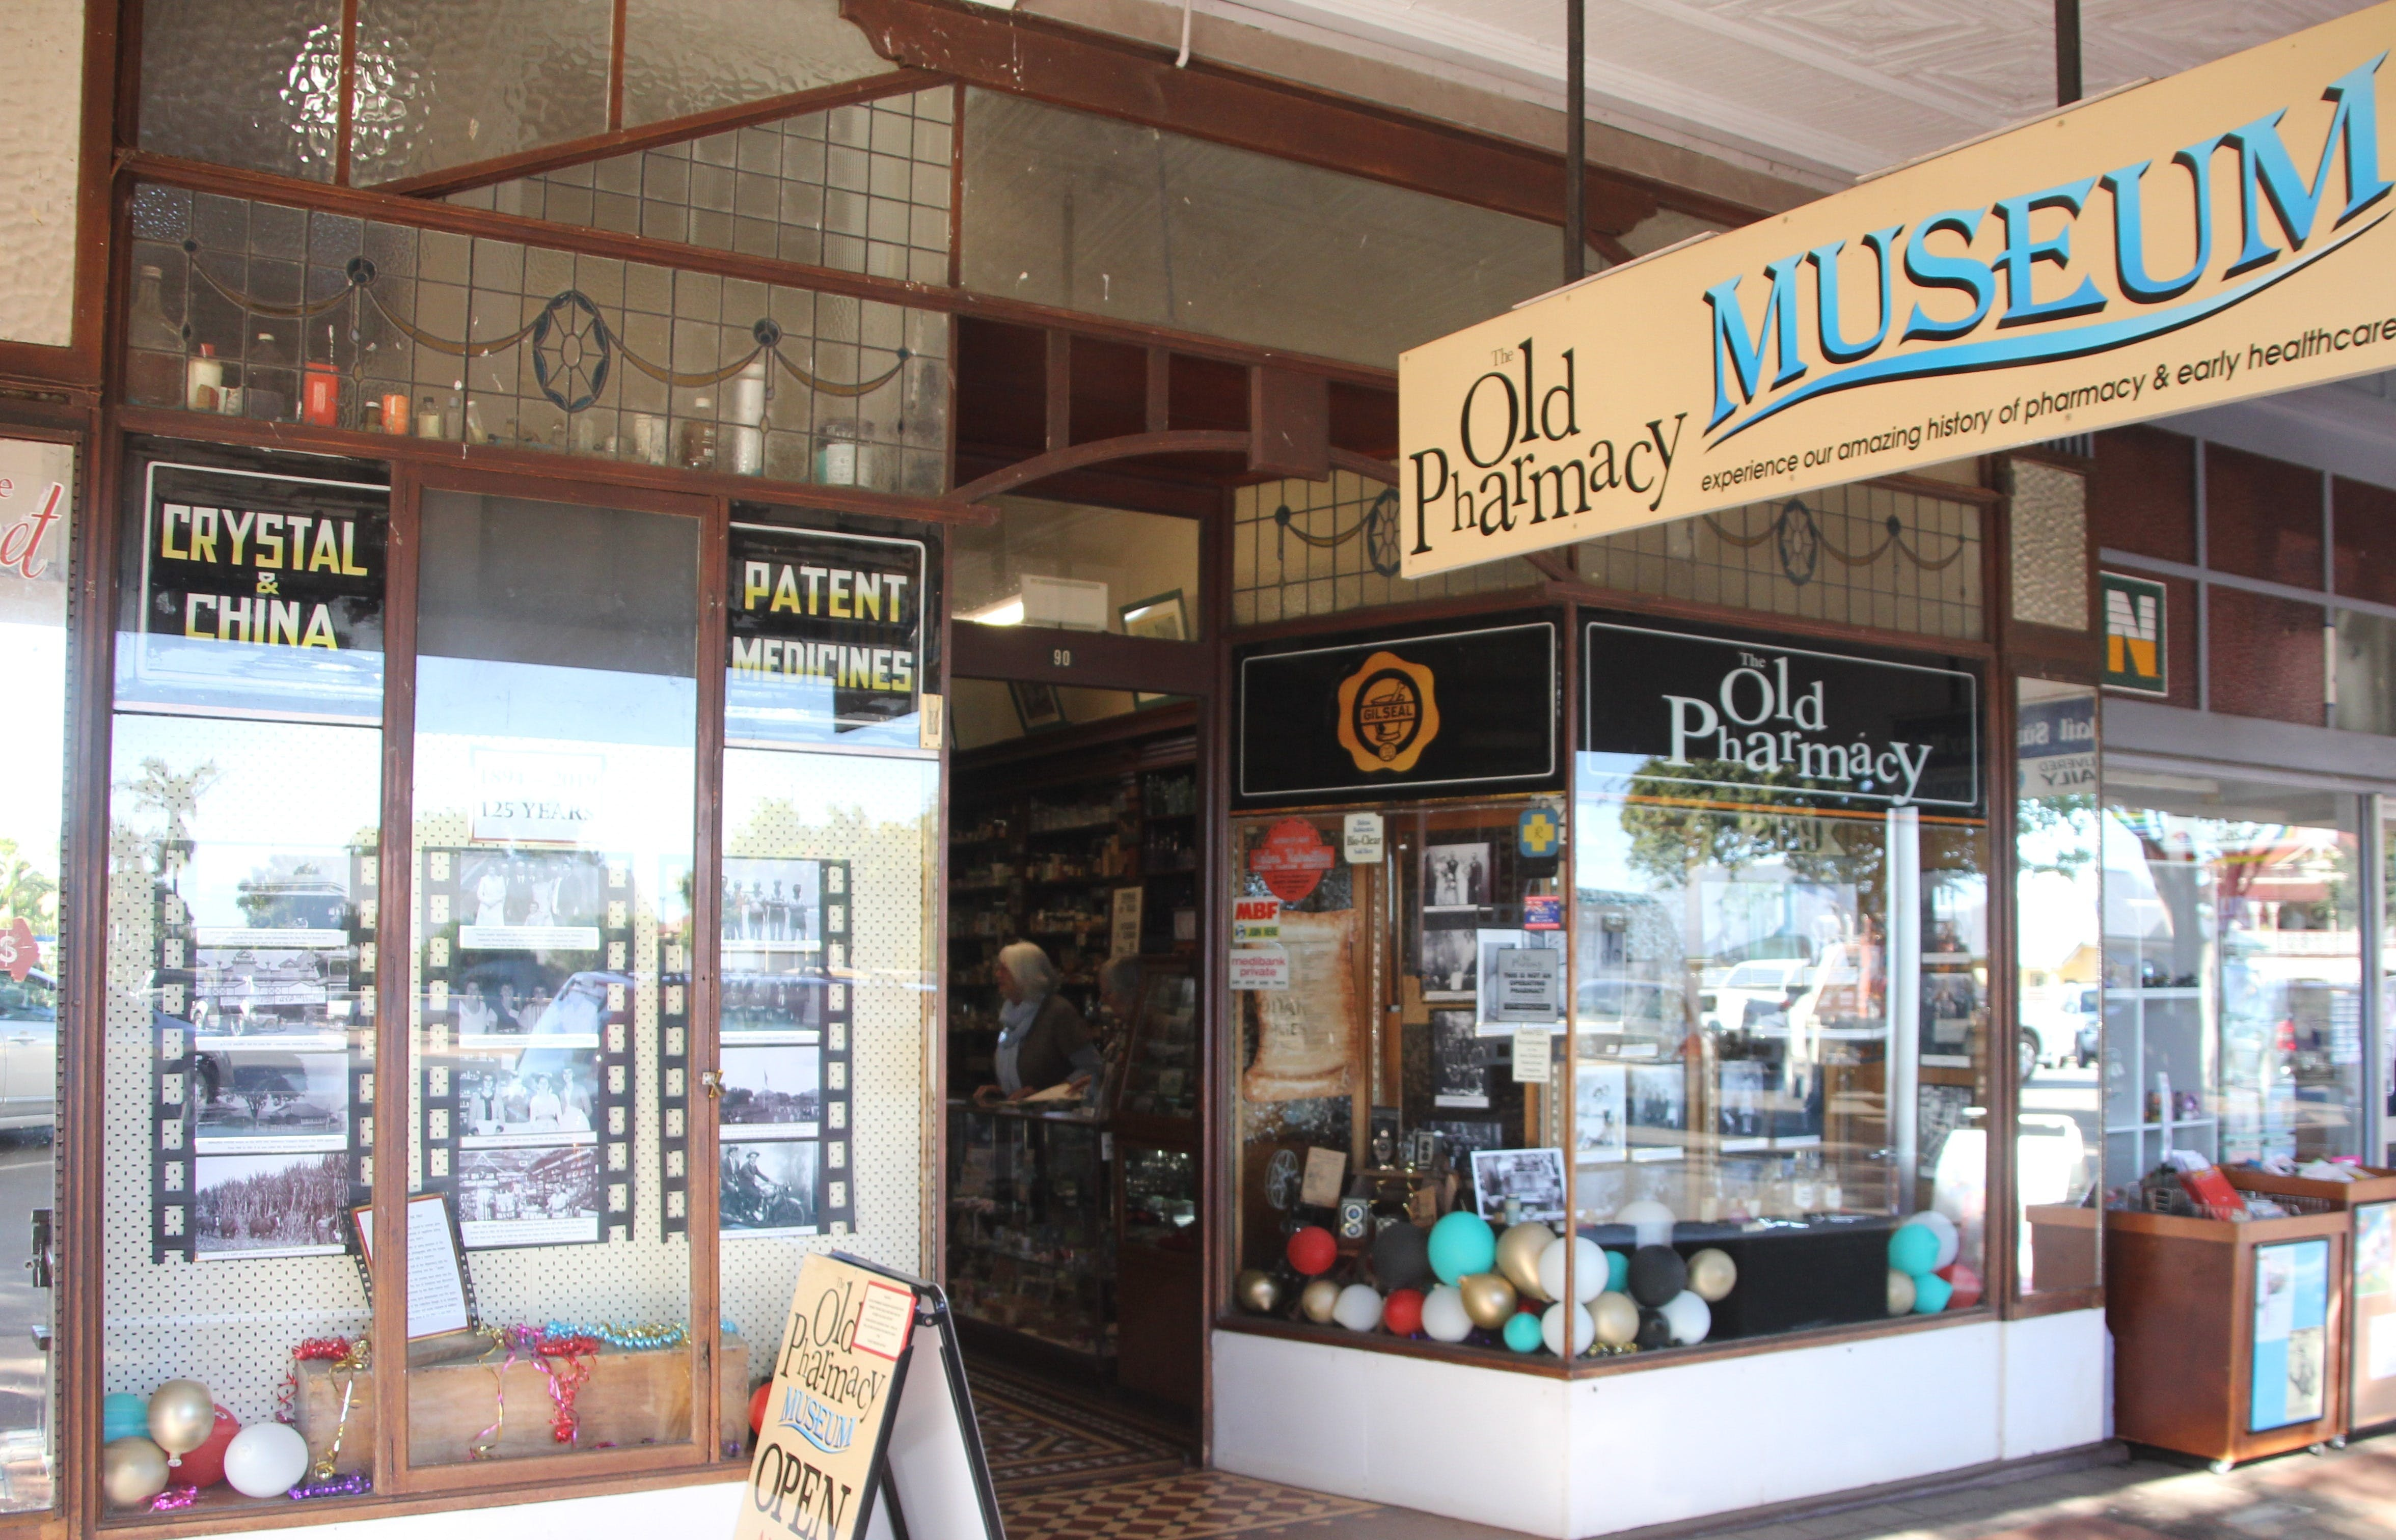 Old Pharmacy Museum  Childers - Townsville Tourism